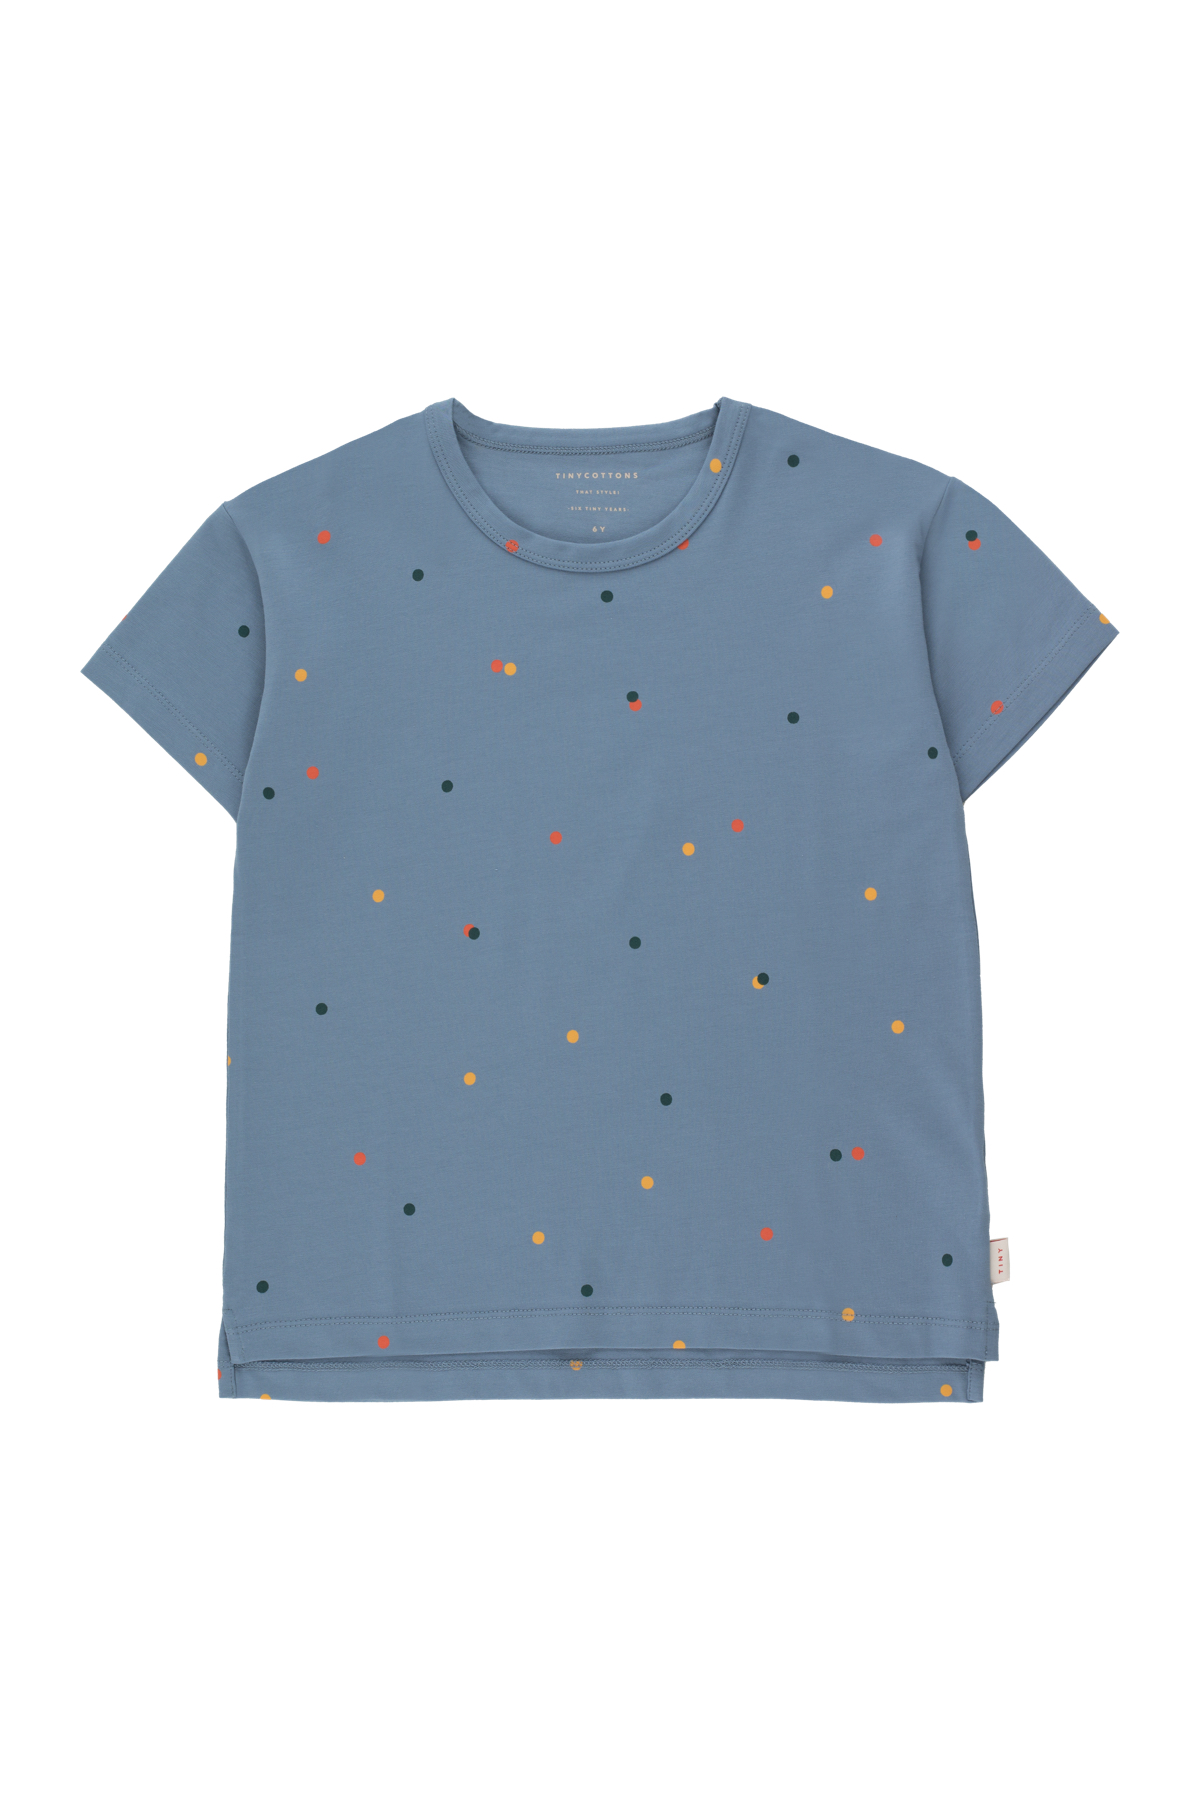 tinycottons ice cream dots tee grey blue